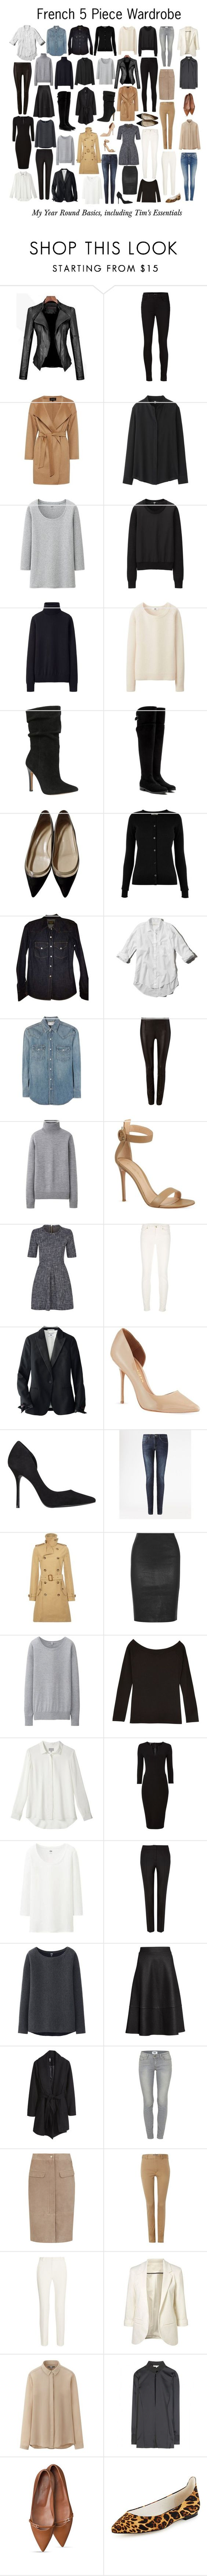 """French 5 Piece Wardrobe - Basics"" by charlotte-mcfarlane ❤ liked on Polyvore featuring J Brand, Jaeger, Uniqlo, ALDO, Dolce&Gabbana, Christian Louboutin, Oasis, J.Crew, Abercrombie & Fitch and Yves Saint Laurent"